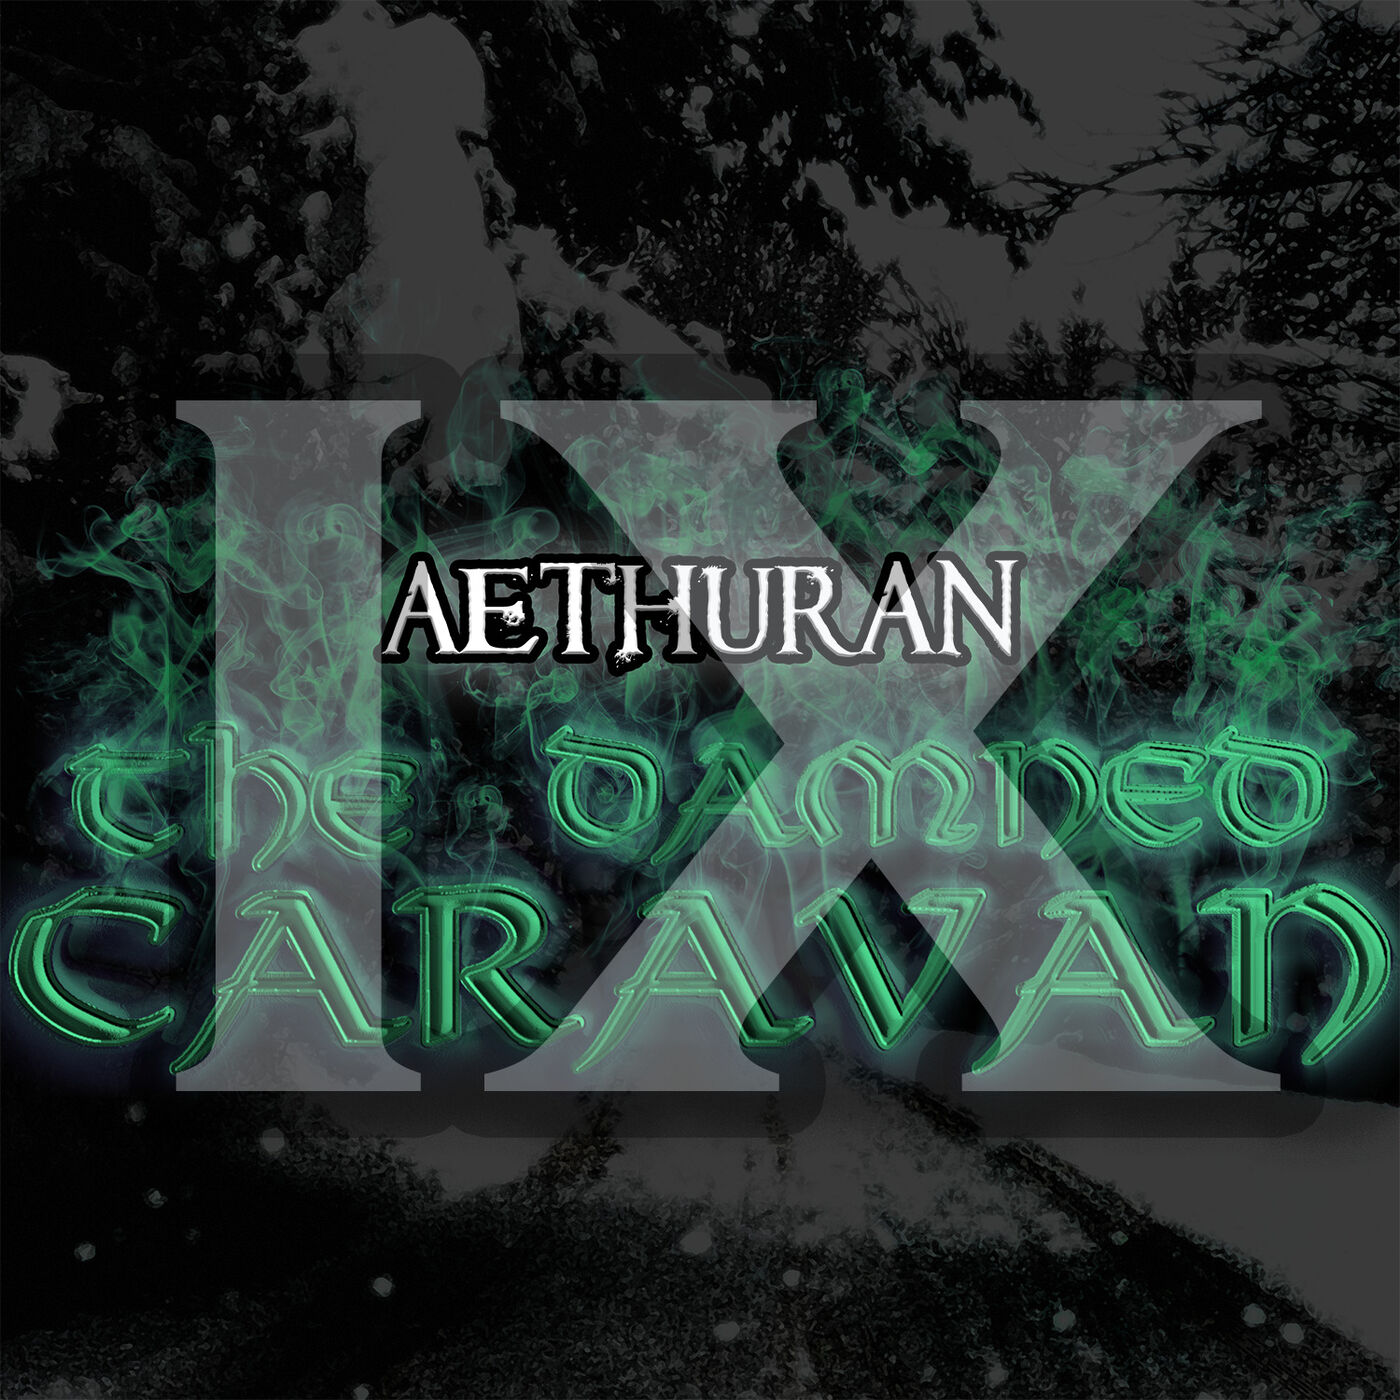 """Aethuran Dark saga - A dark fantasy Audio fiction"" Podcast"